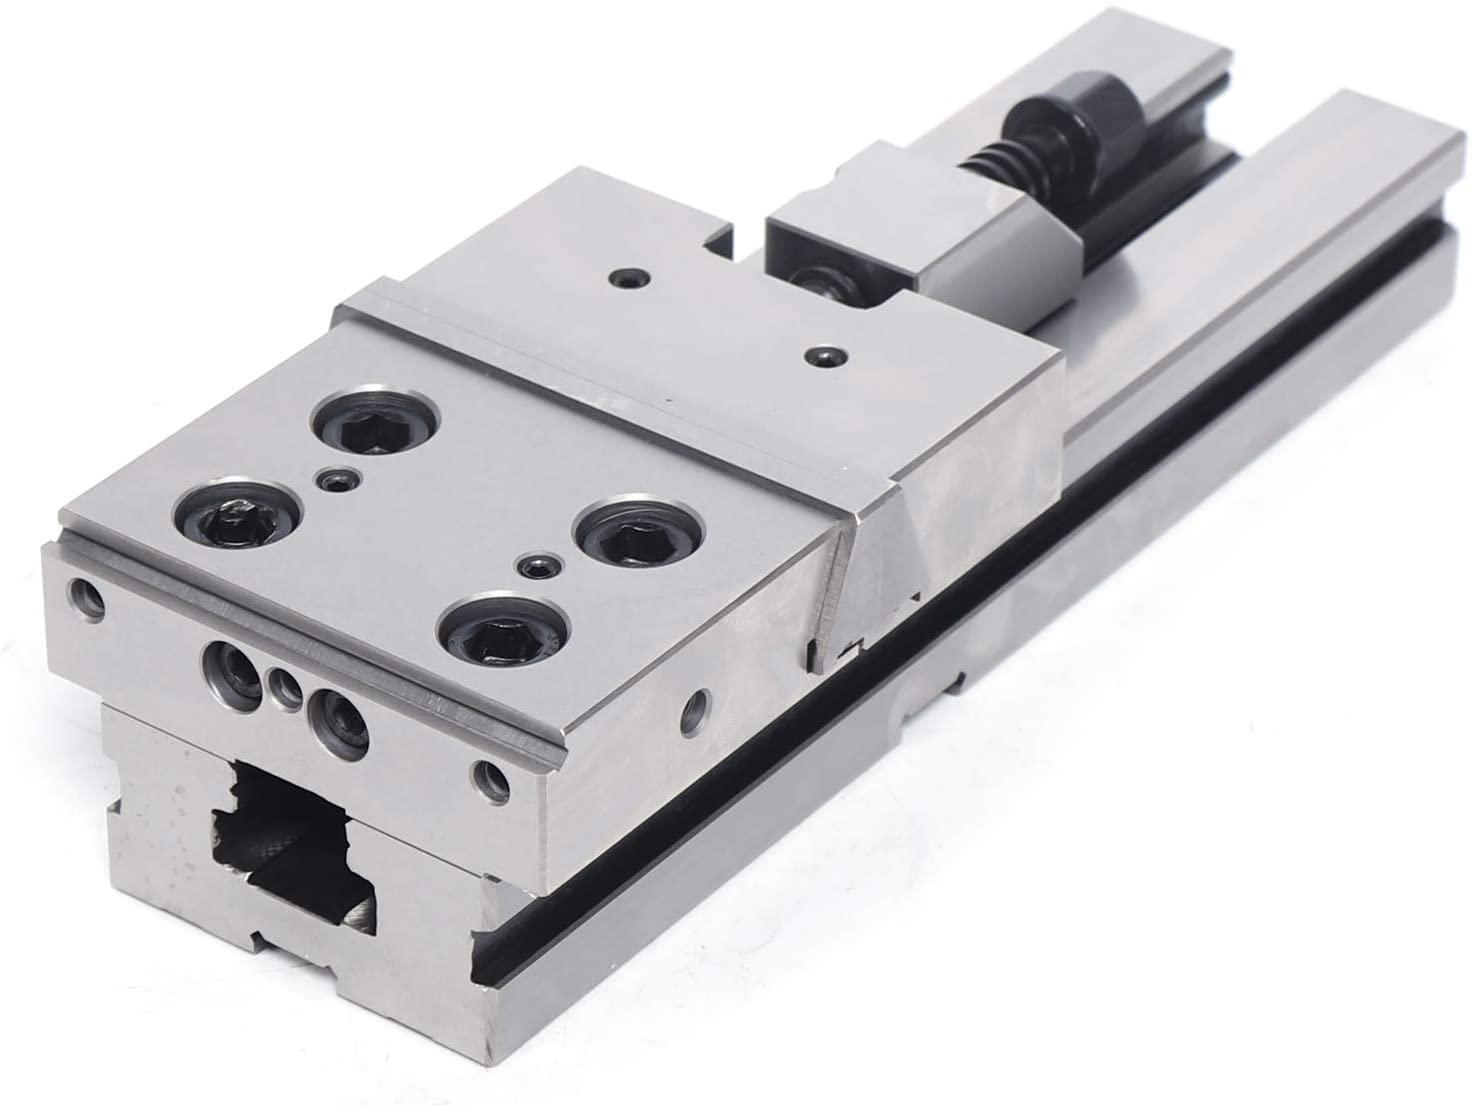 WINUS Precision Vise, Vise Stainless Steel Clamp Diameter 100mm Jaw Opening Clamp for CNC Milling Machine